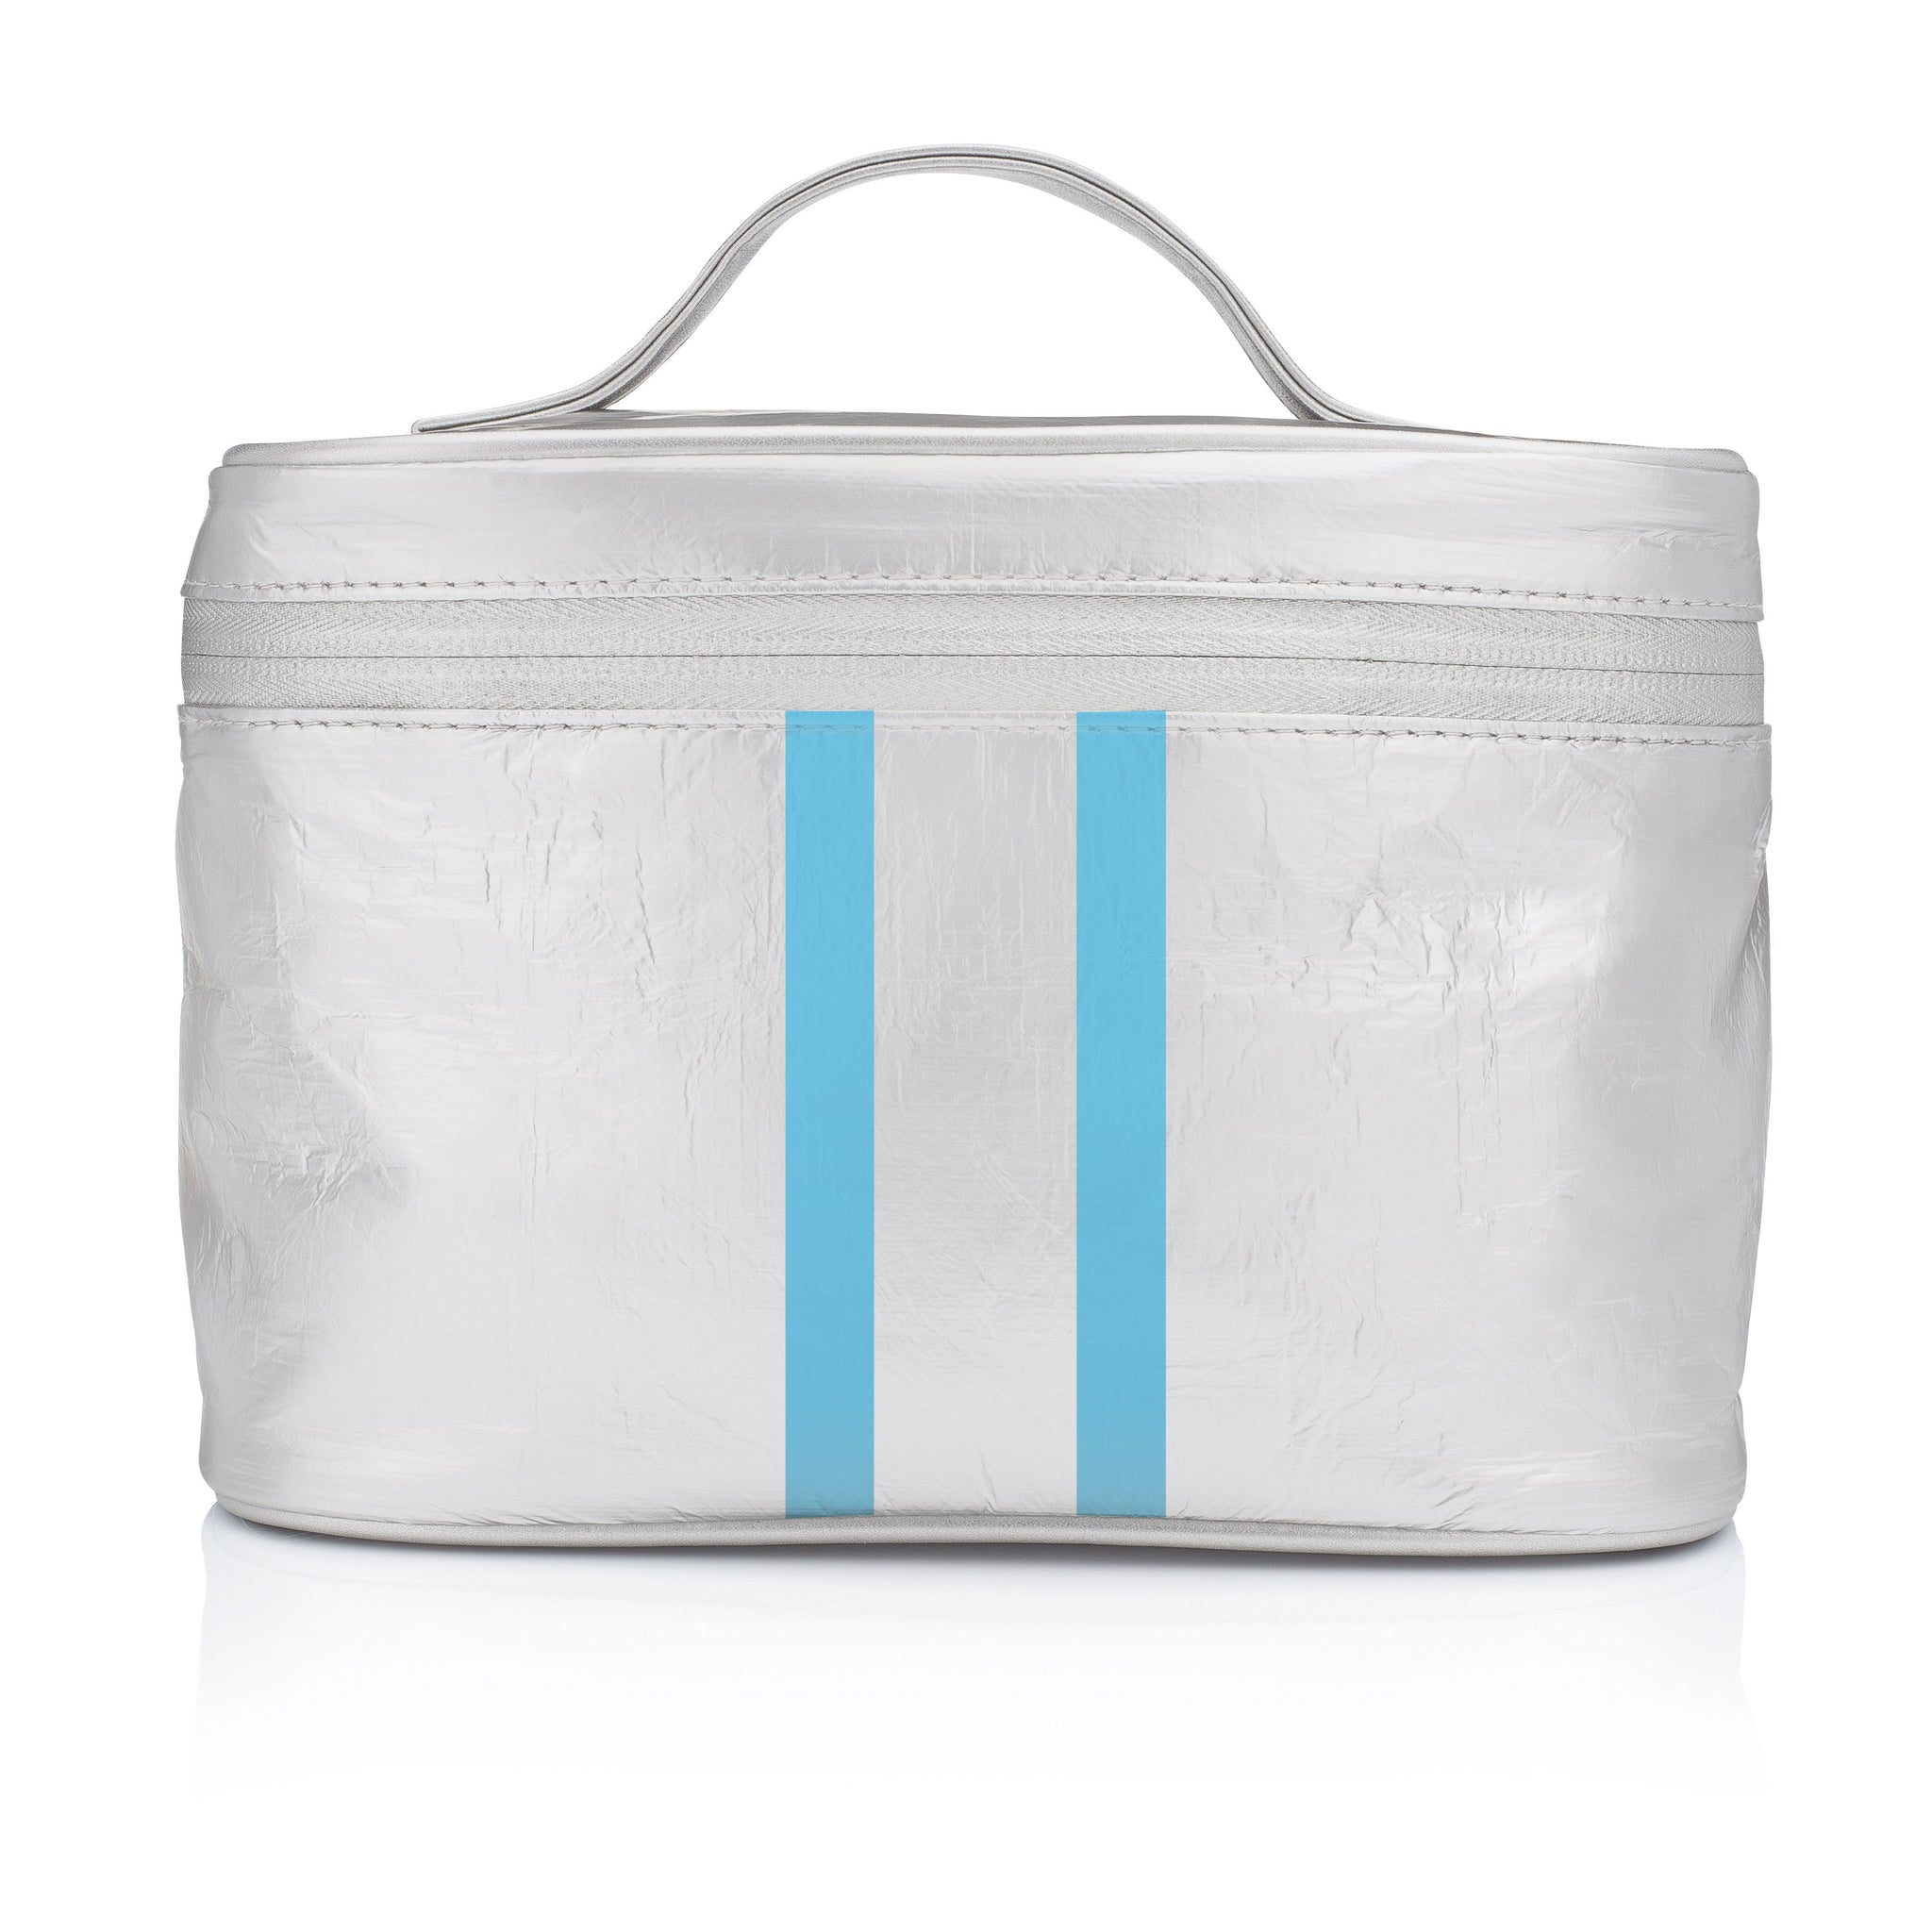 Cute Cosmetic Case - Lunch Box - Metallic Silver with Sky Blue Stripes